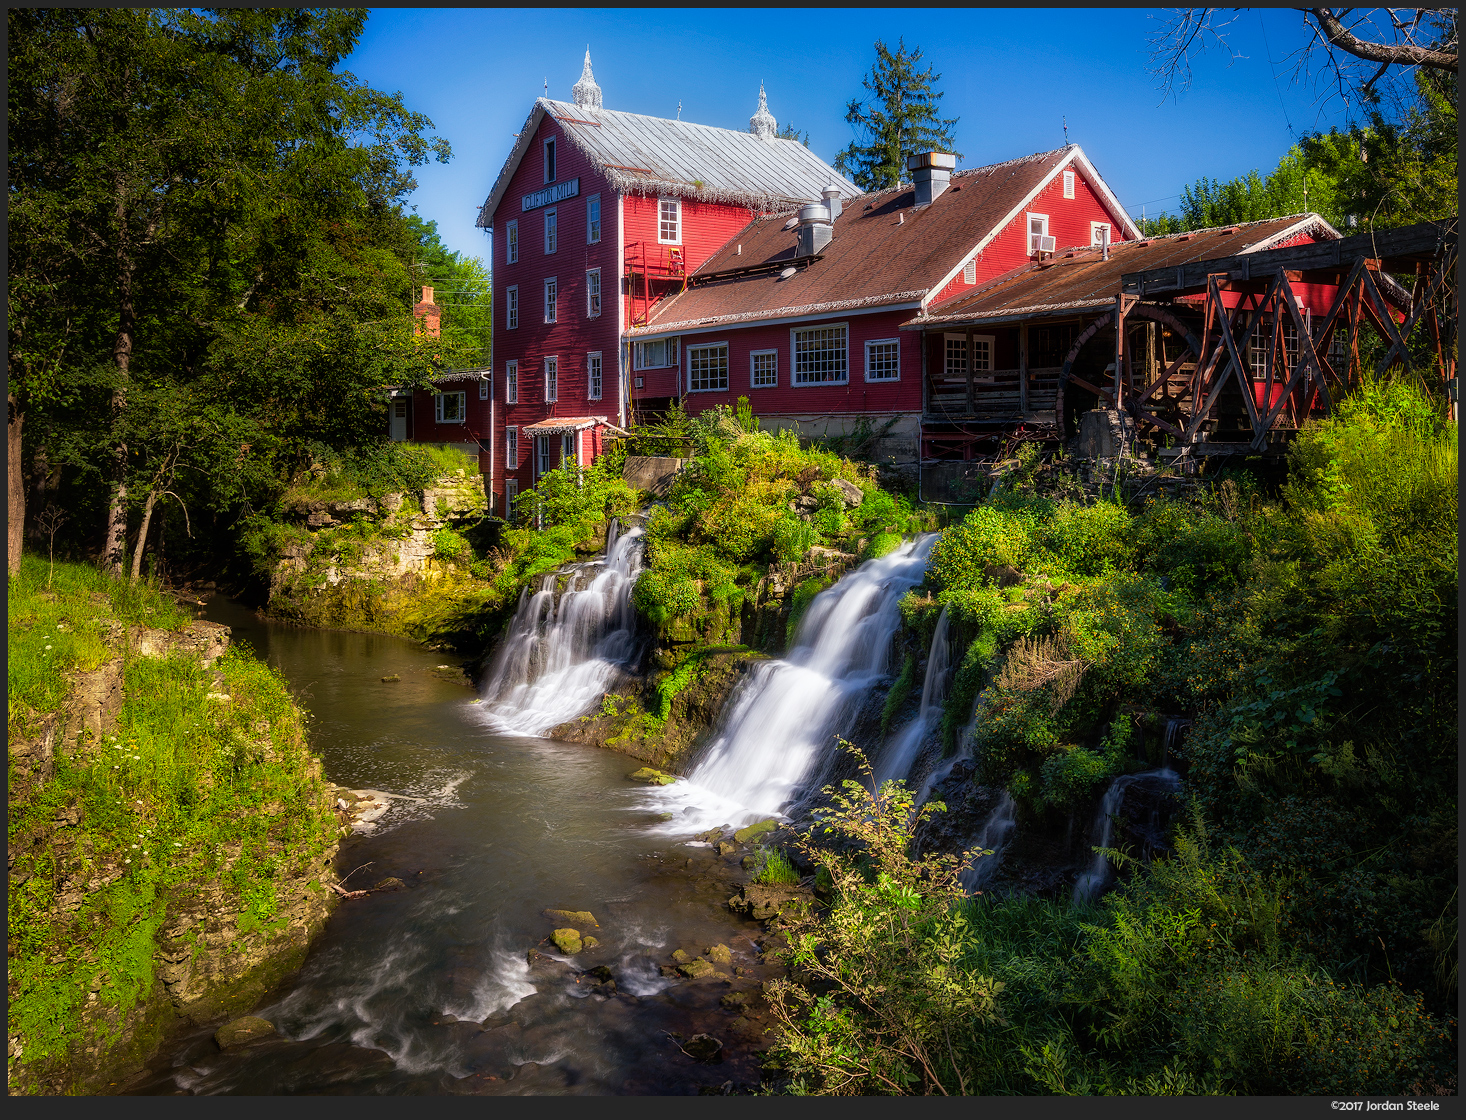 Clifton Mill - Sony A7 II with Zeiss FE 16-35mm f/4 @